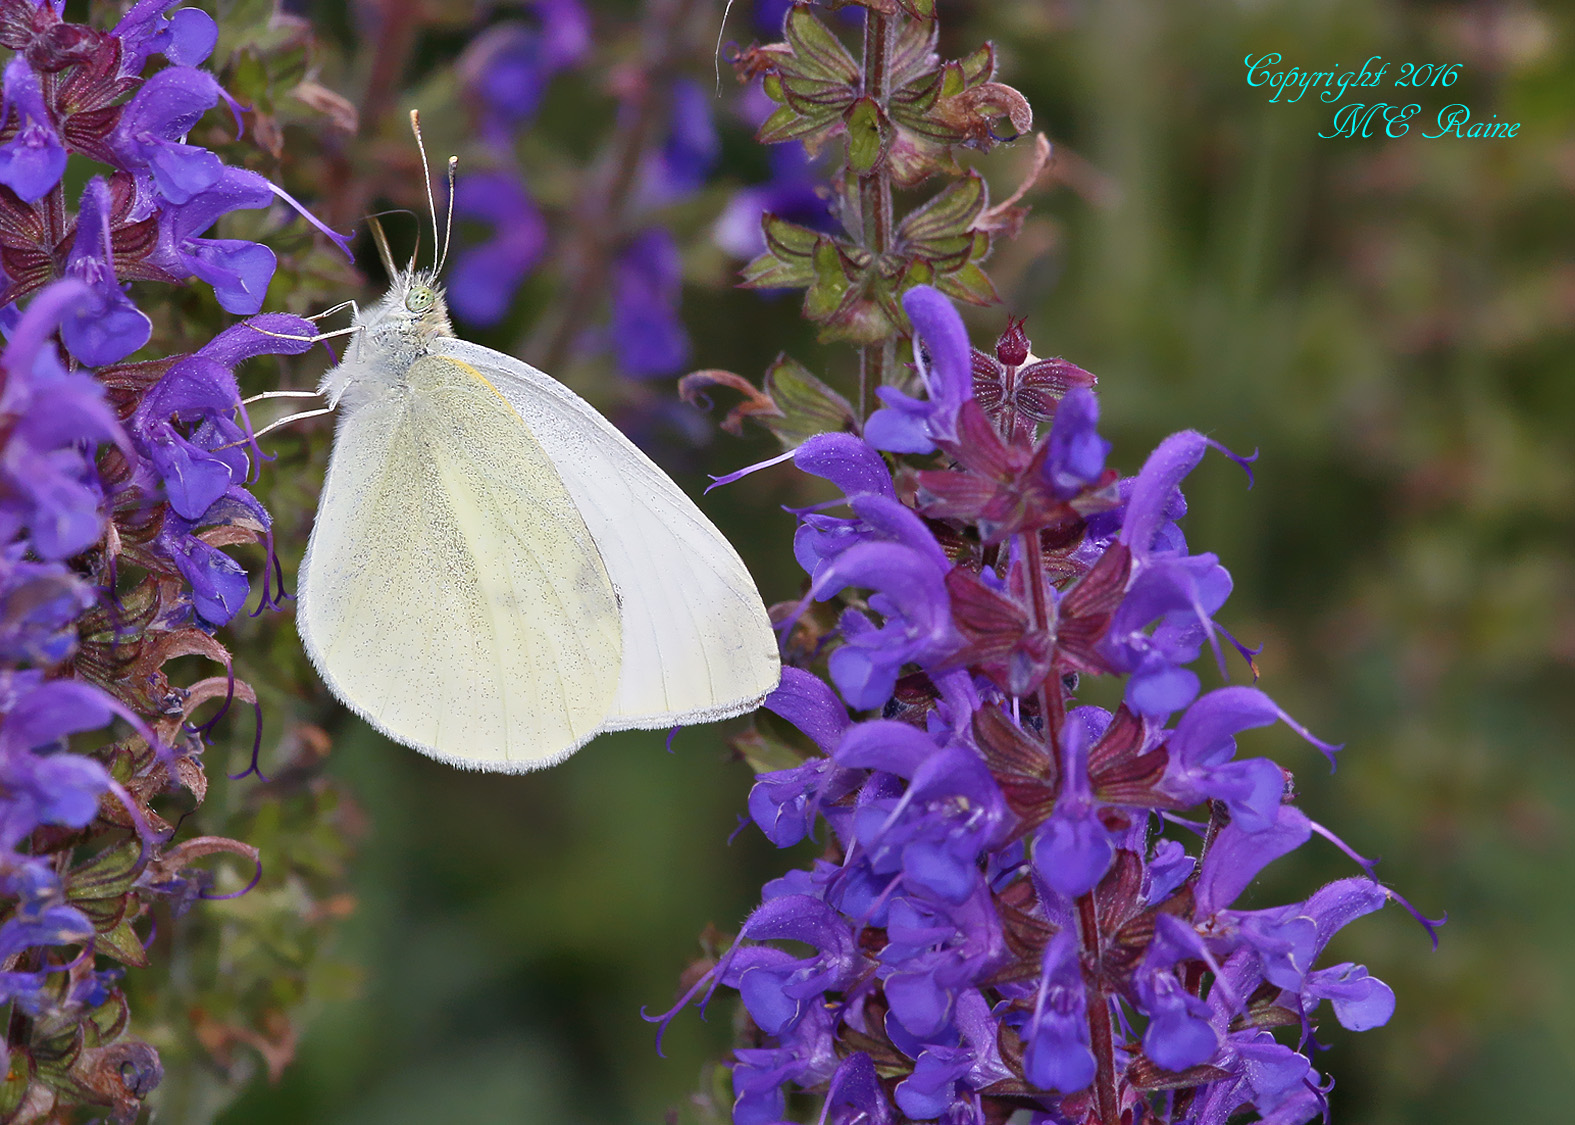 White Cabbage Butterfly4 DeKorte  5.31.16